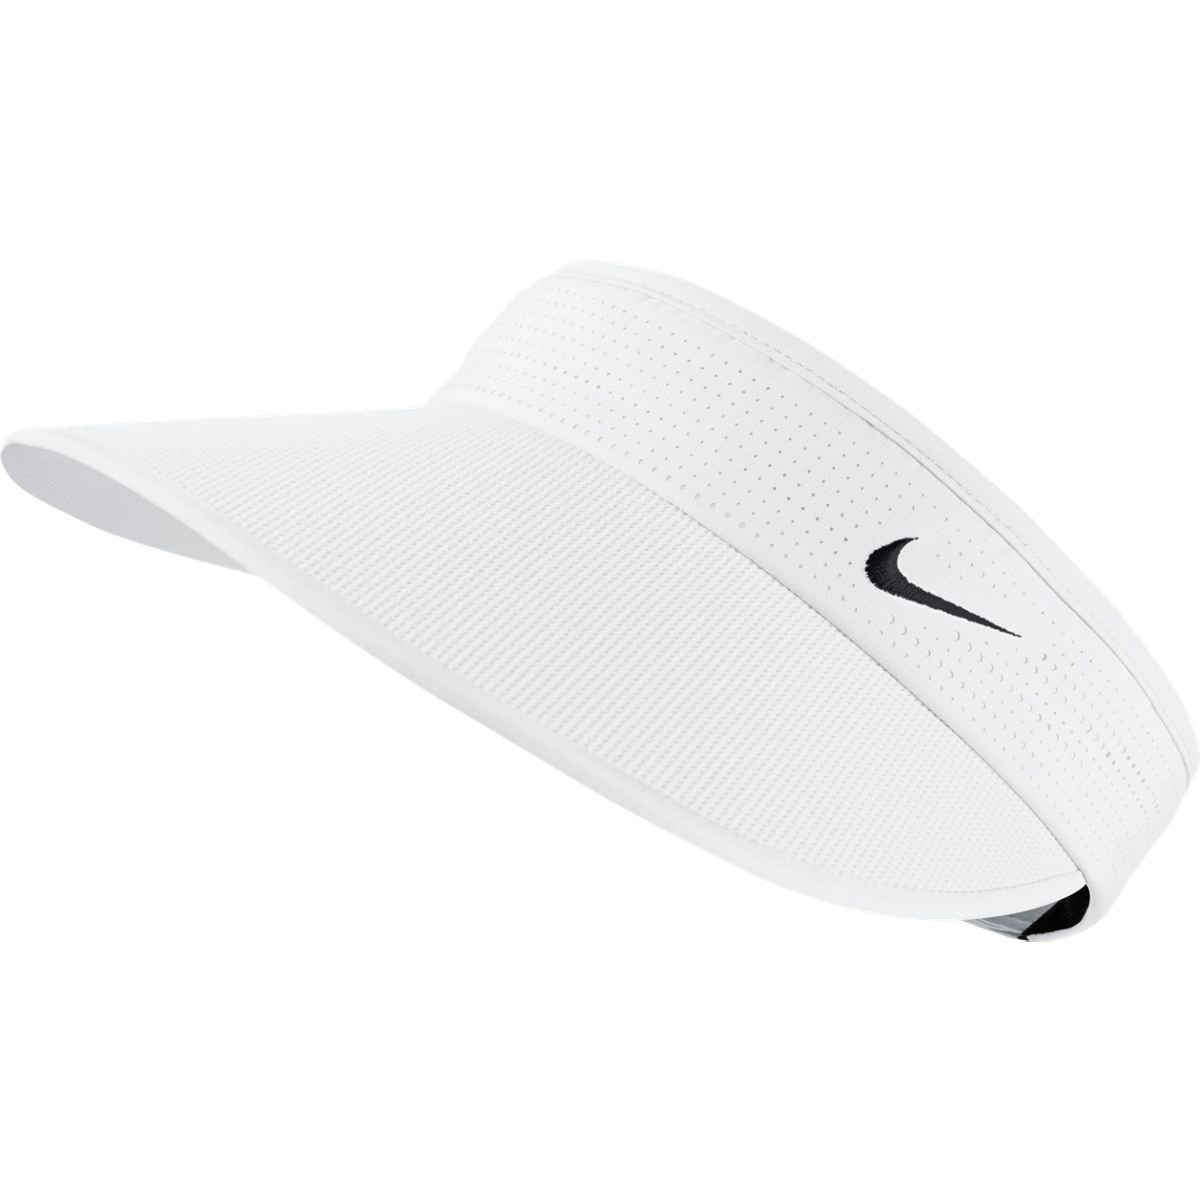 Nike Golf Women's Big Bill Visor WHITE/WHITE/BLACK